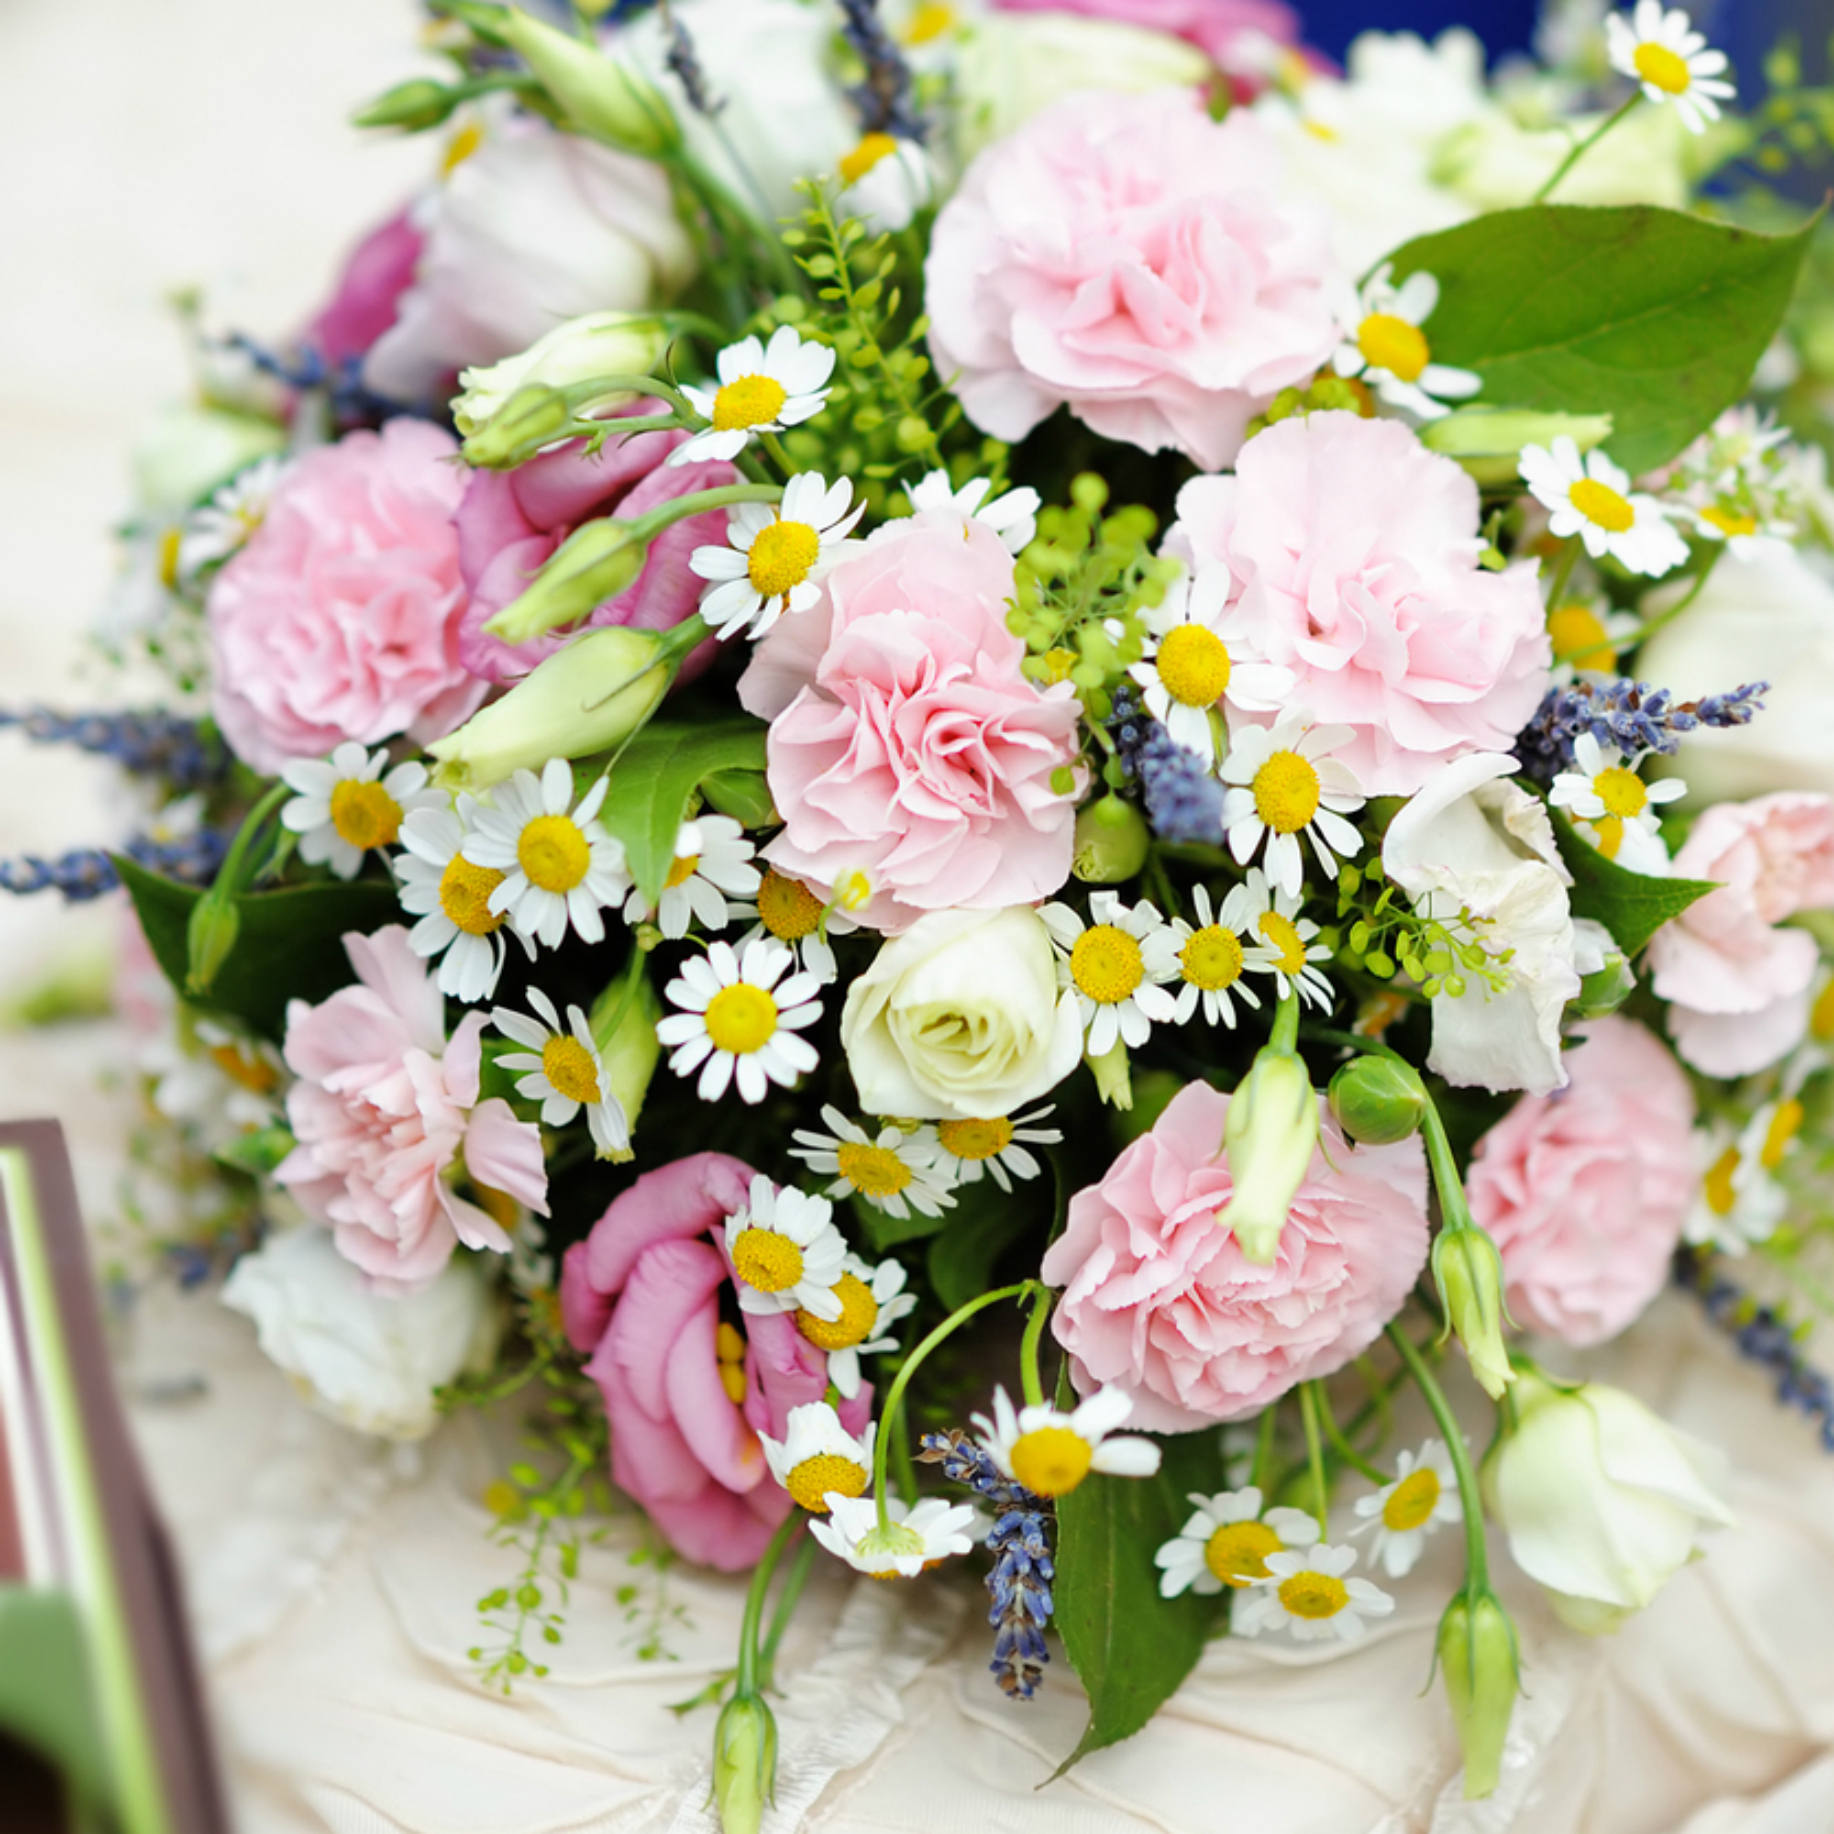 Flower bouquet deals uk free oil change coupons jiffy lube check out our 118 stores that offer flowers coupons and deals surprise them with a lovely flower bouquet free uk delivery on selected orders izmirmasajfo